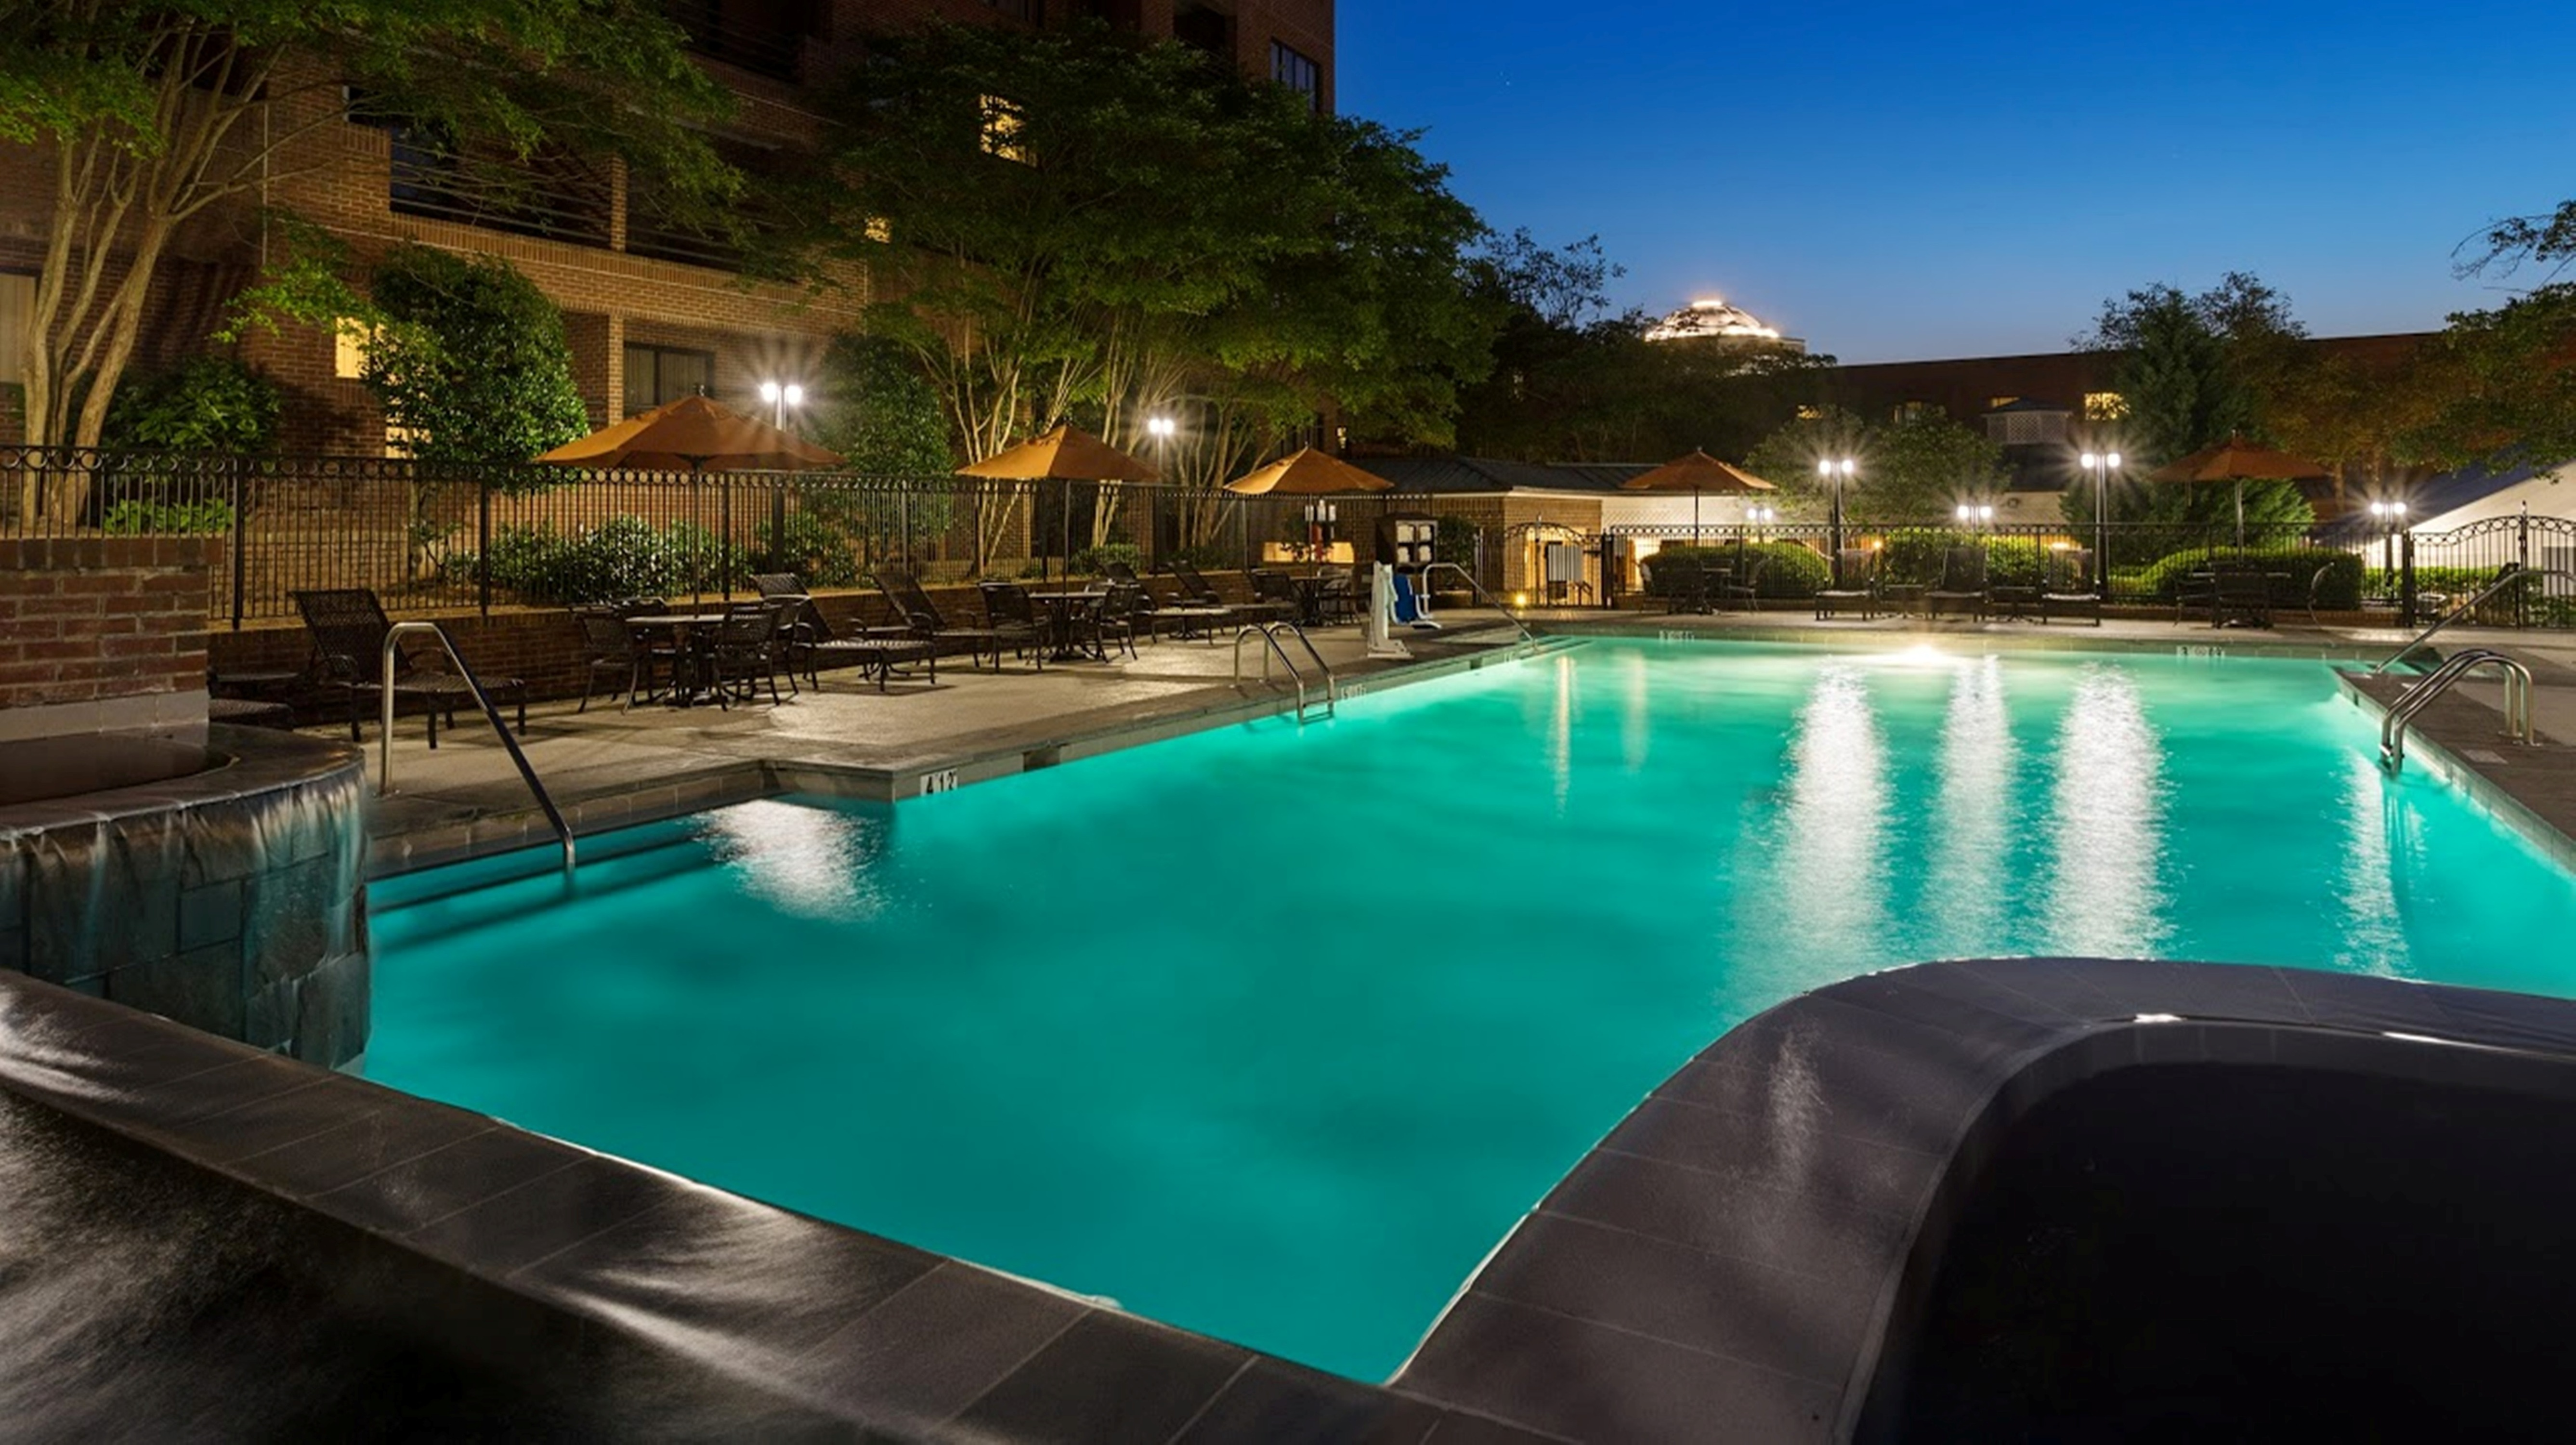 https://www.hotelsbyday.com/_data/default-hotel_image/4/21632/pool-shot-evening.jpg